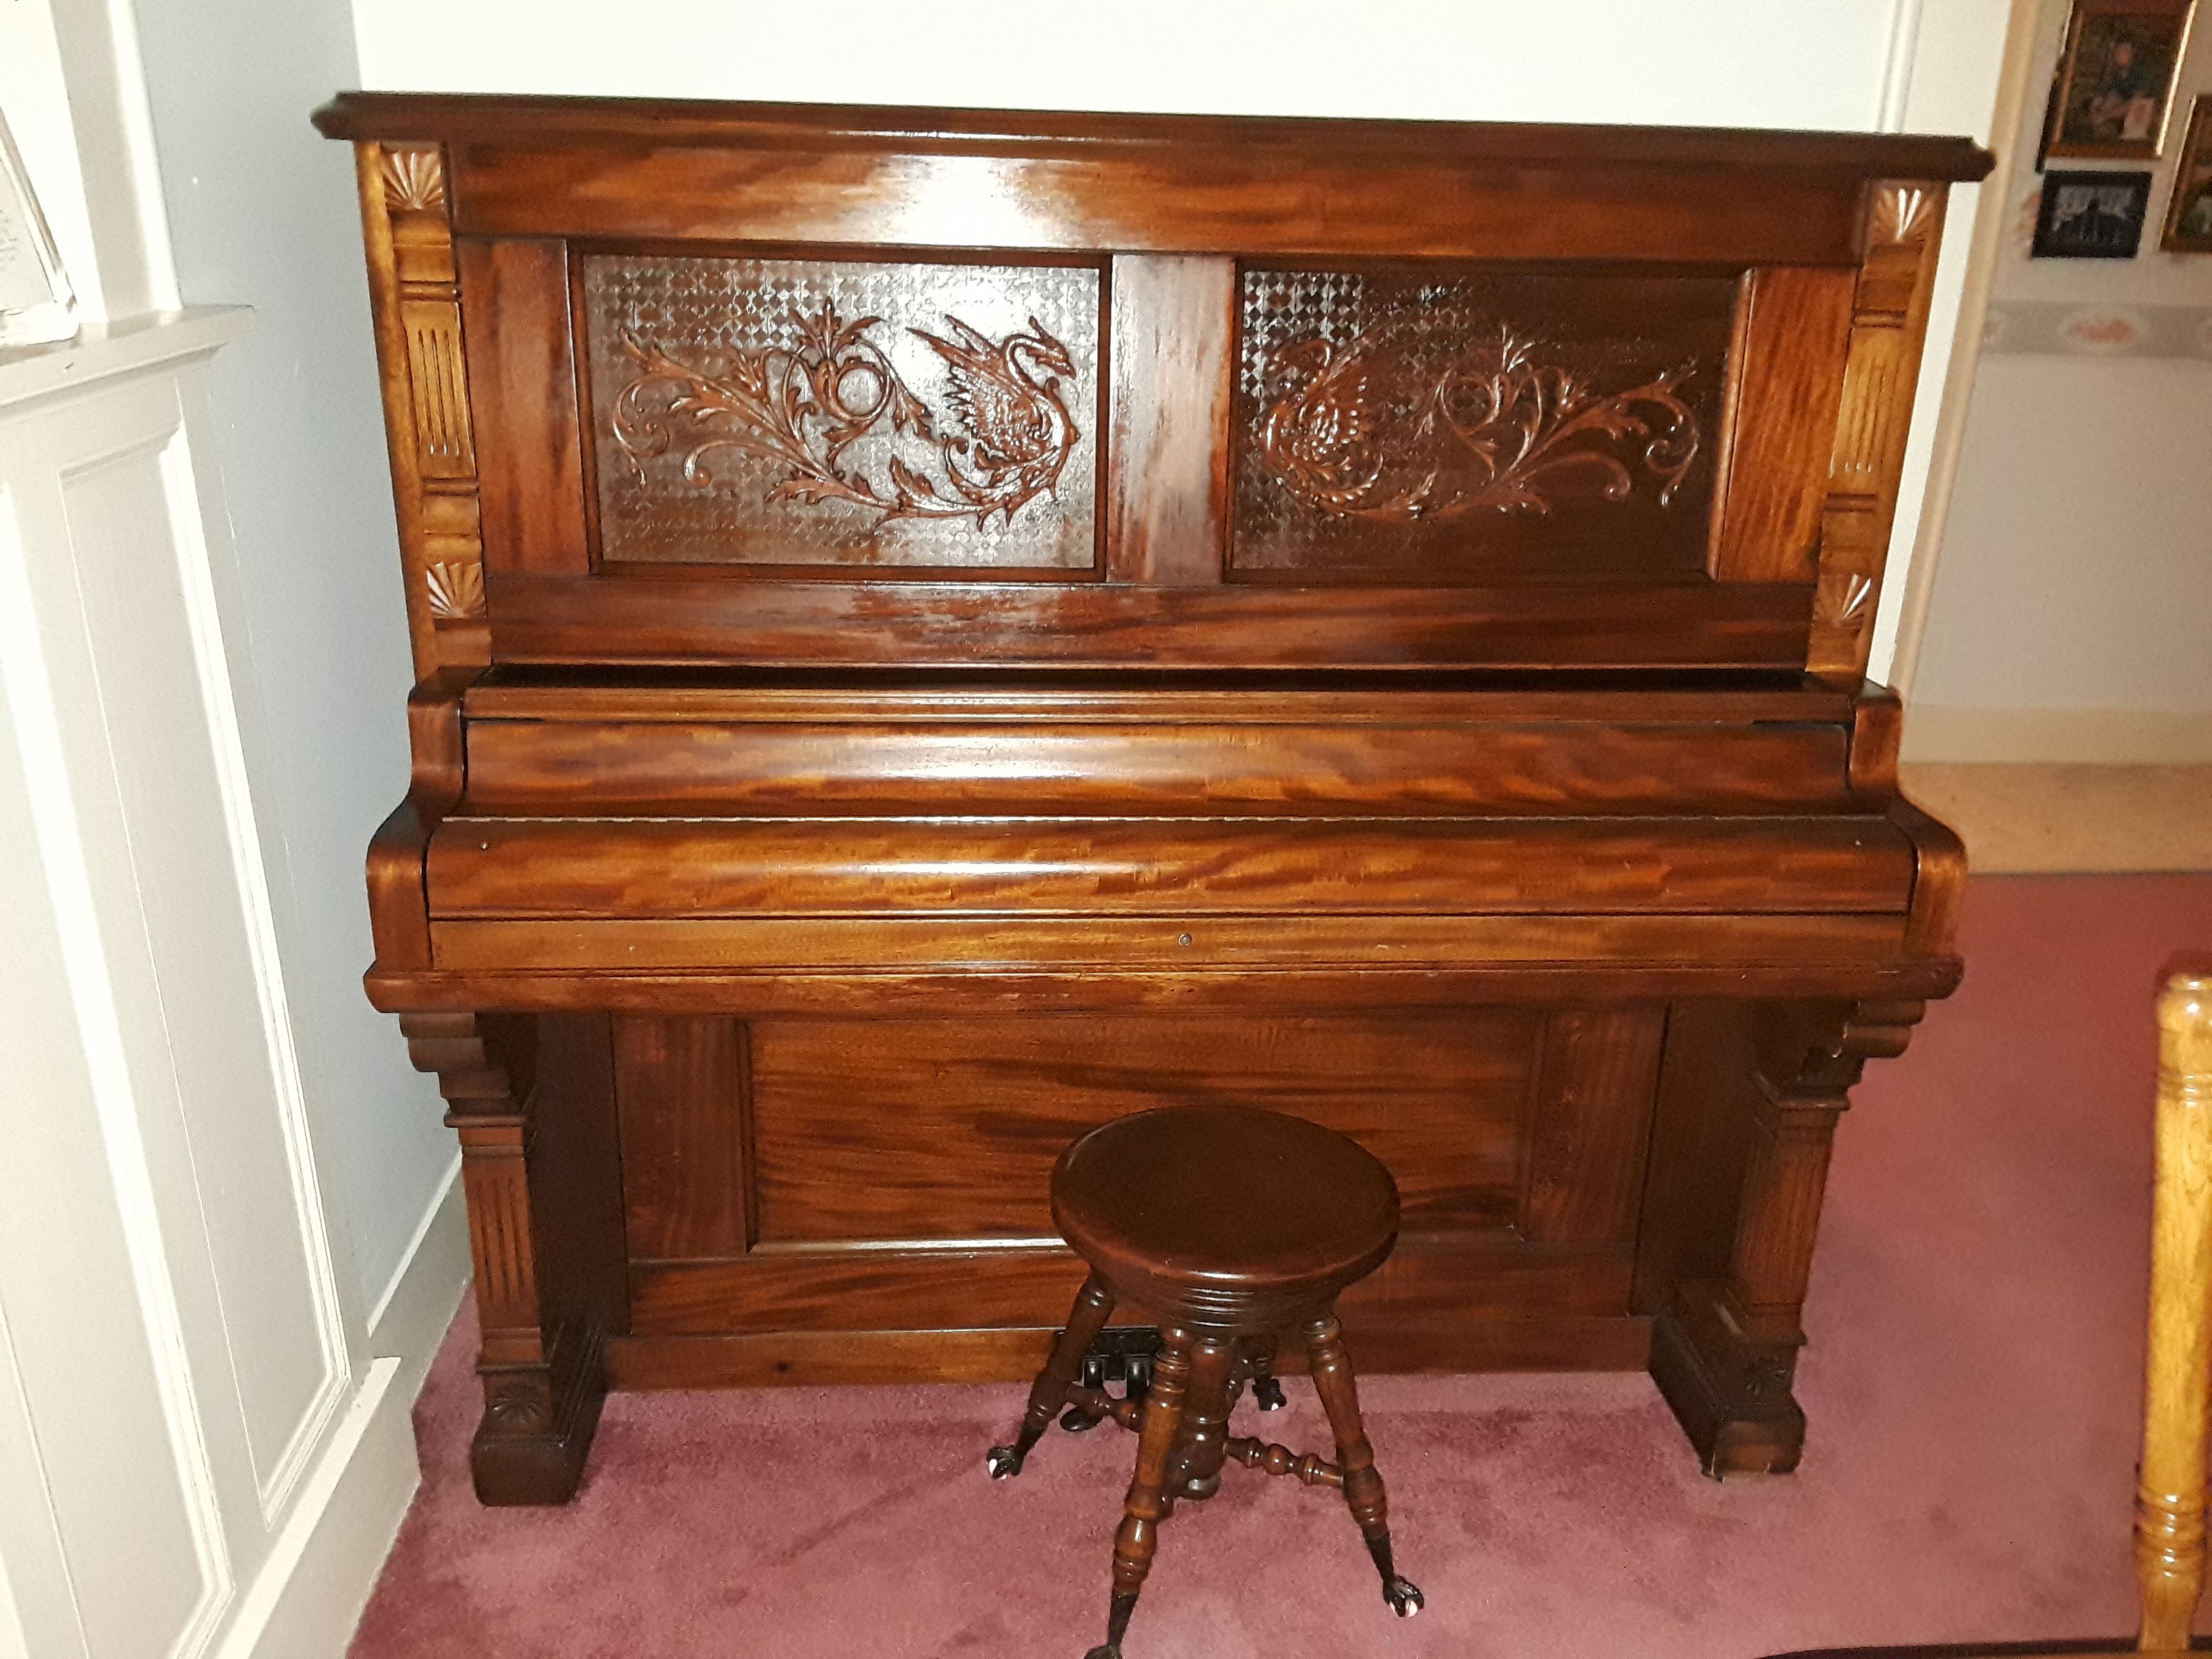 Victorian Era Upright Piano